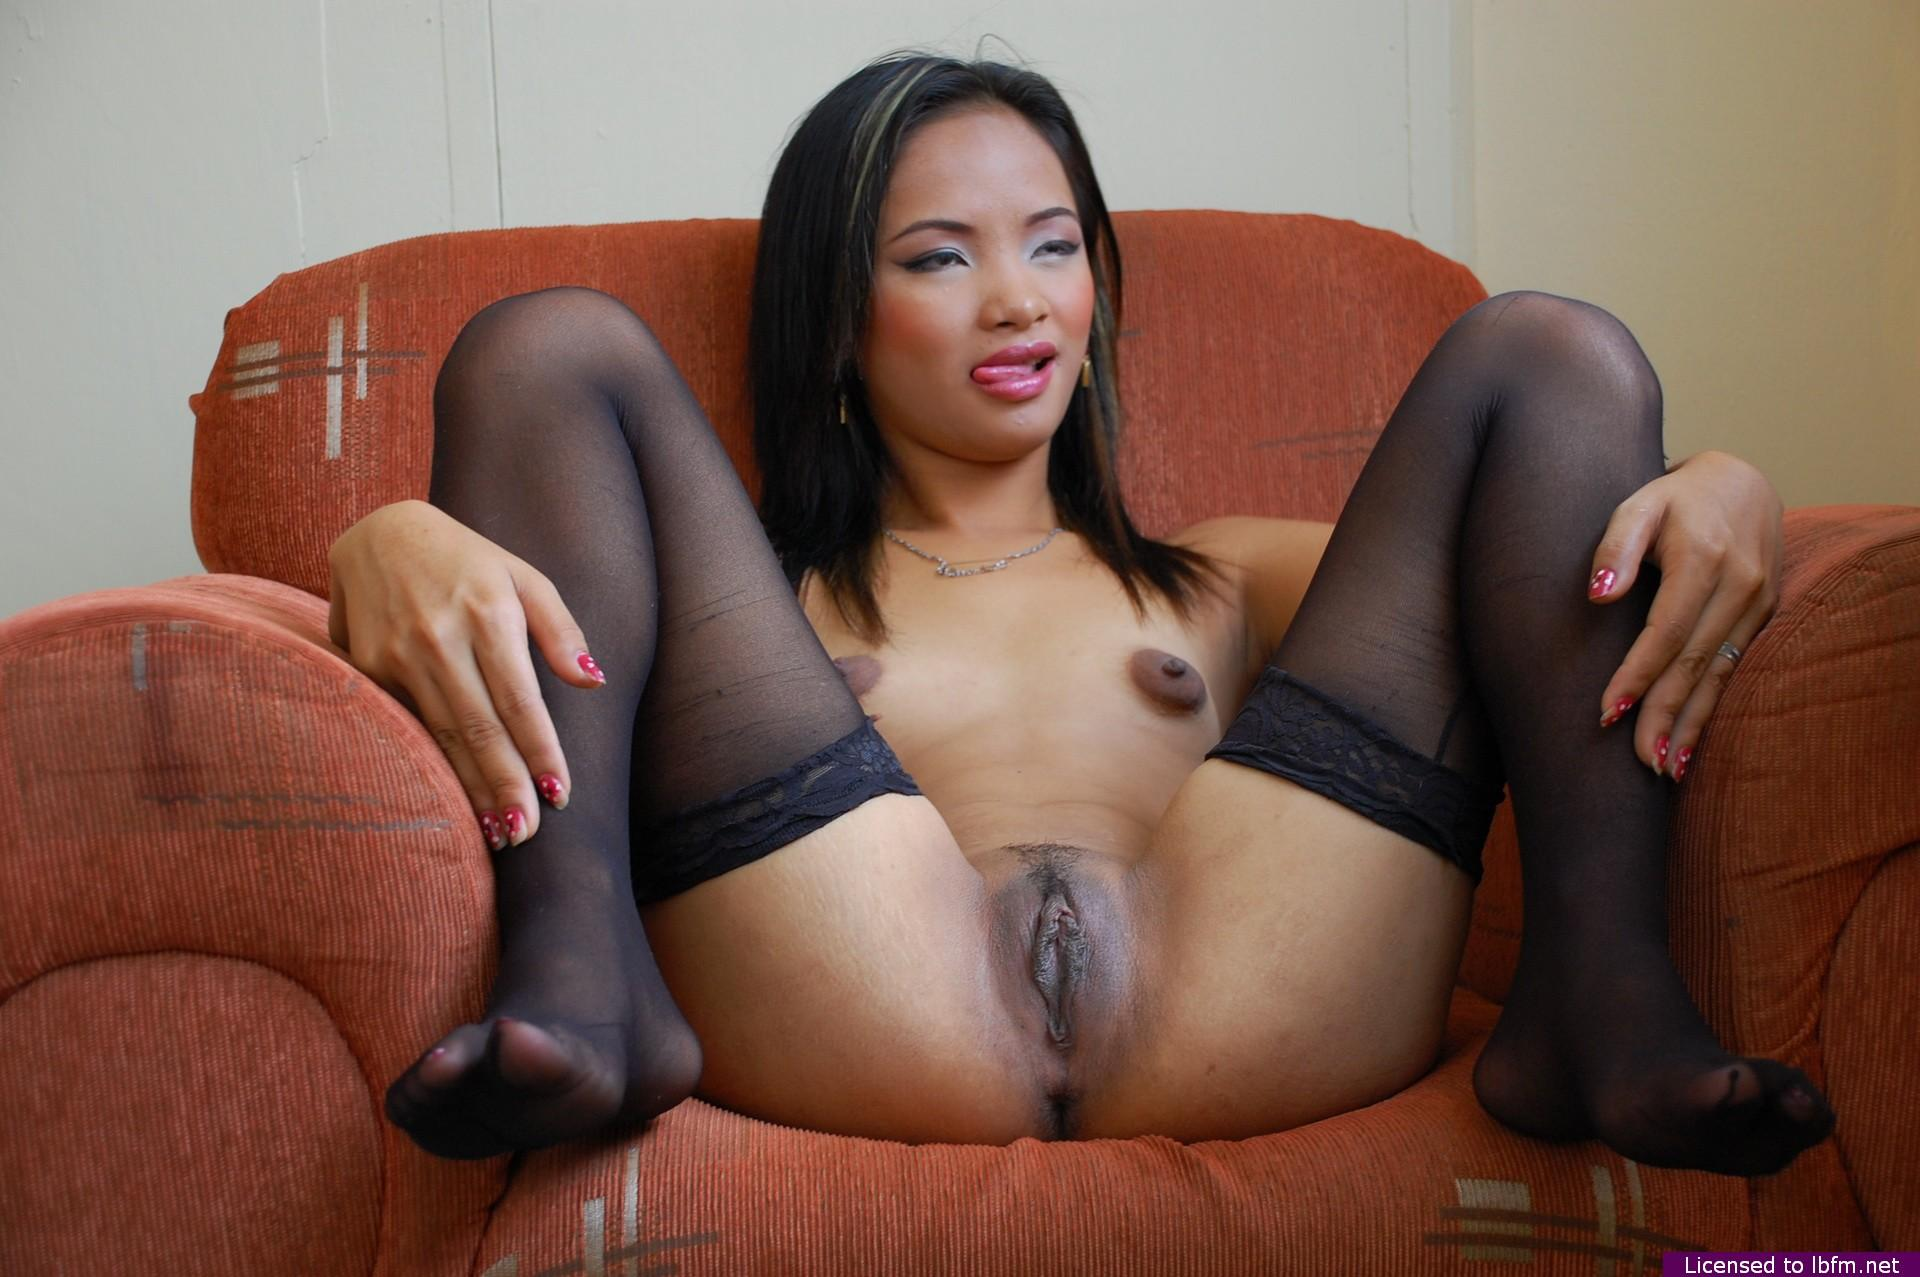 Puffy asian nipples real discovered what